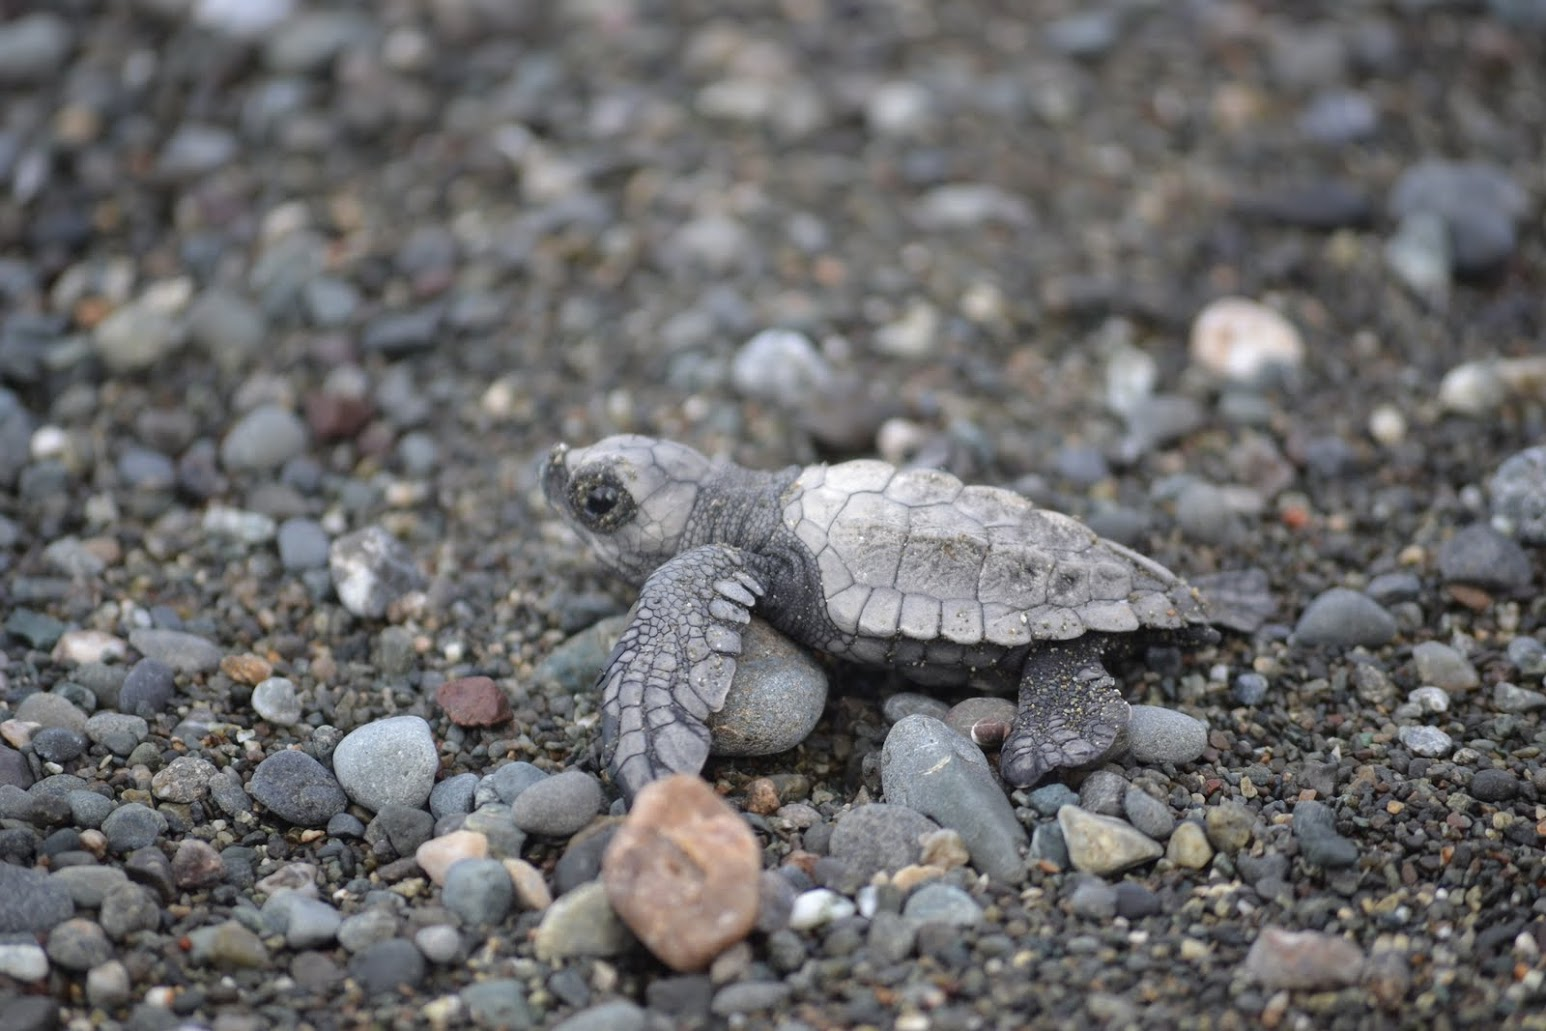 A newly hatched olive ridley turtle works it way towards the ocean.  Osa Peninsula, Costa Rica, 2011. Photo: Owen Liu